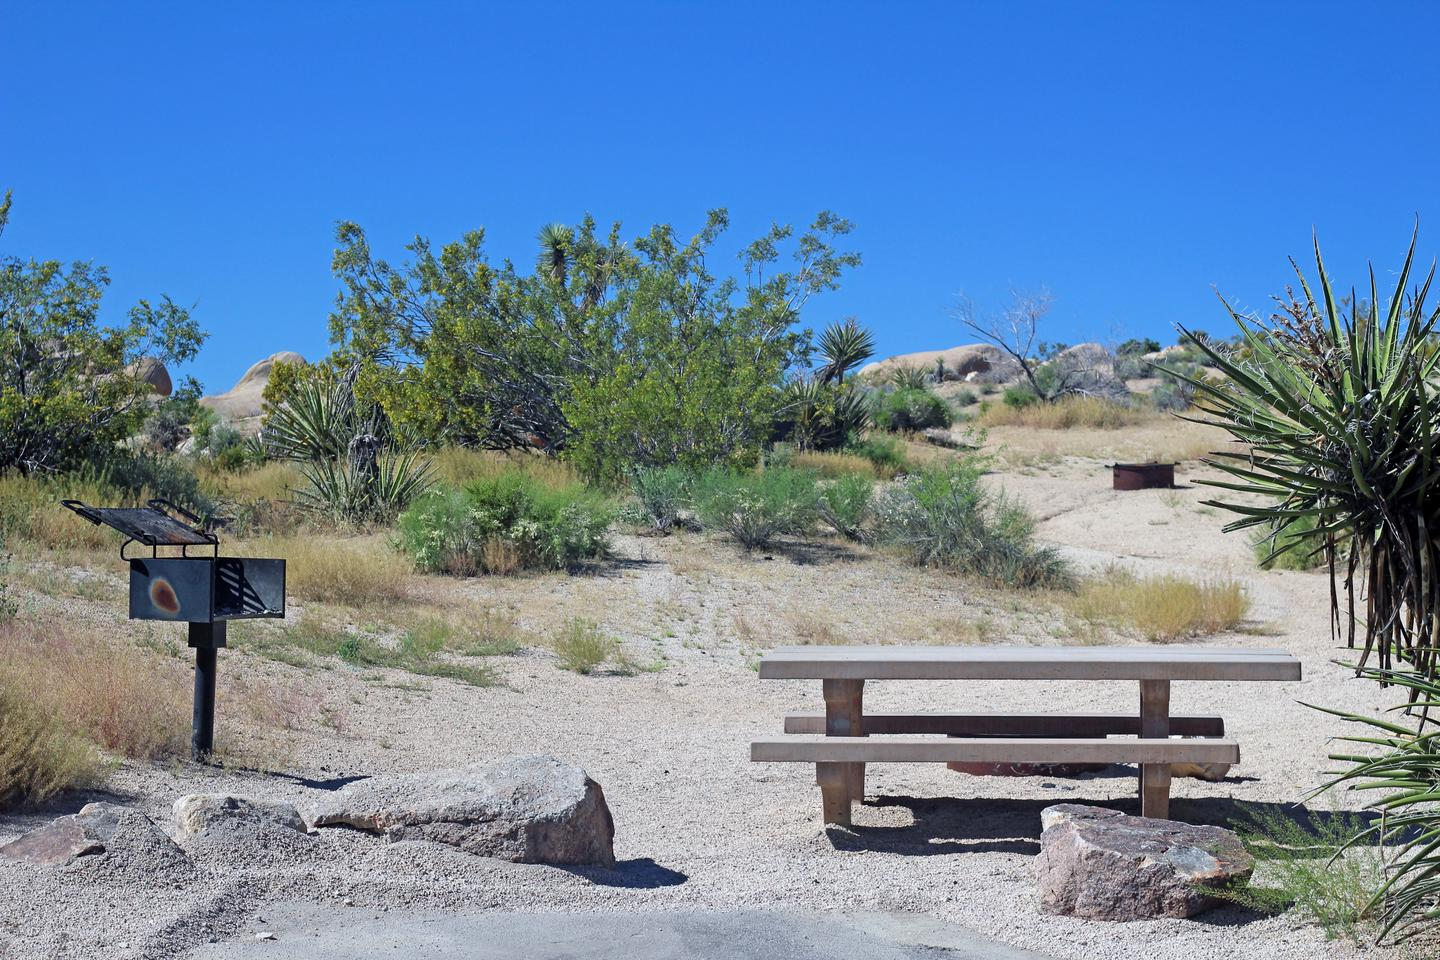 Campsite  with picnic table surrounded by boulders and green plants.